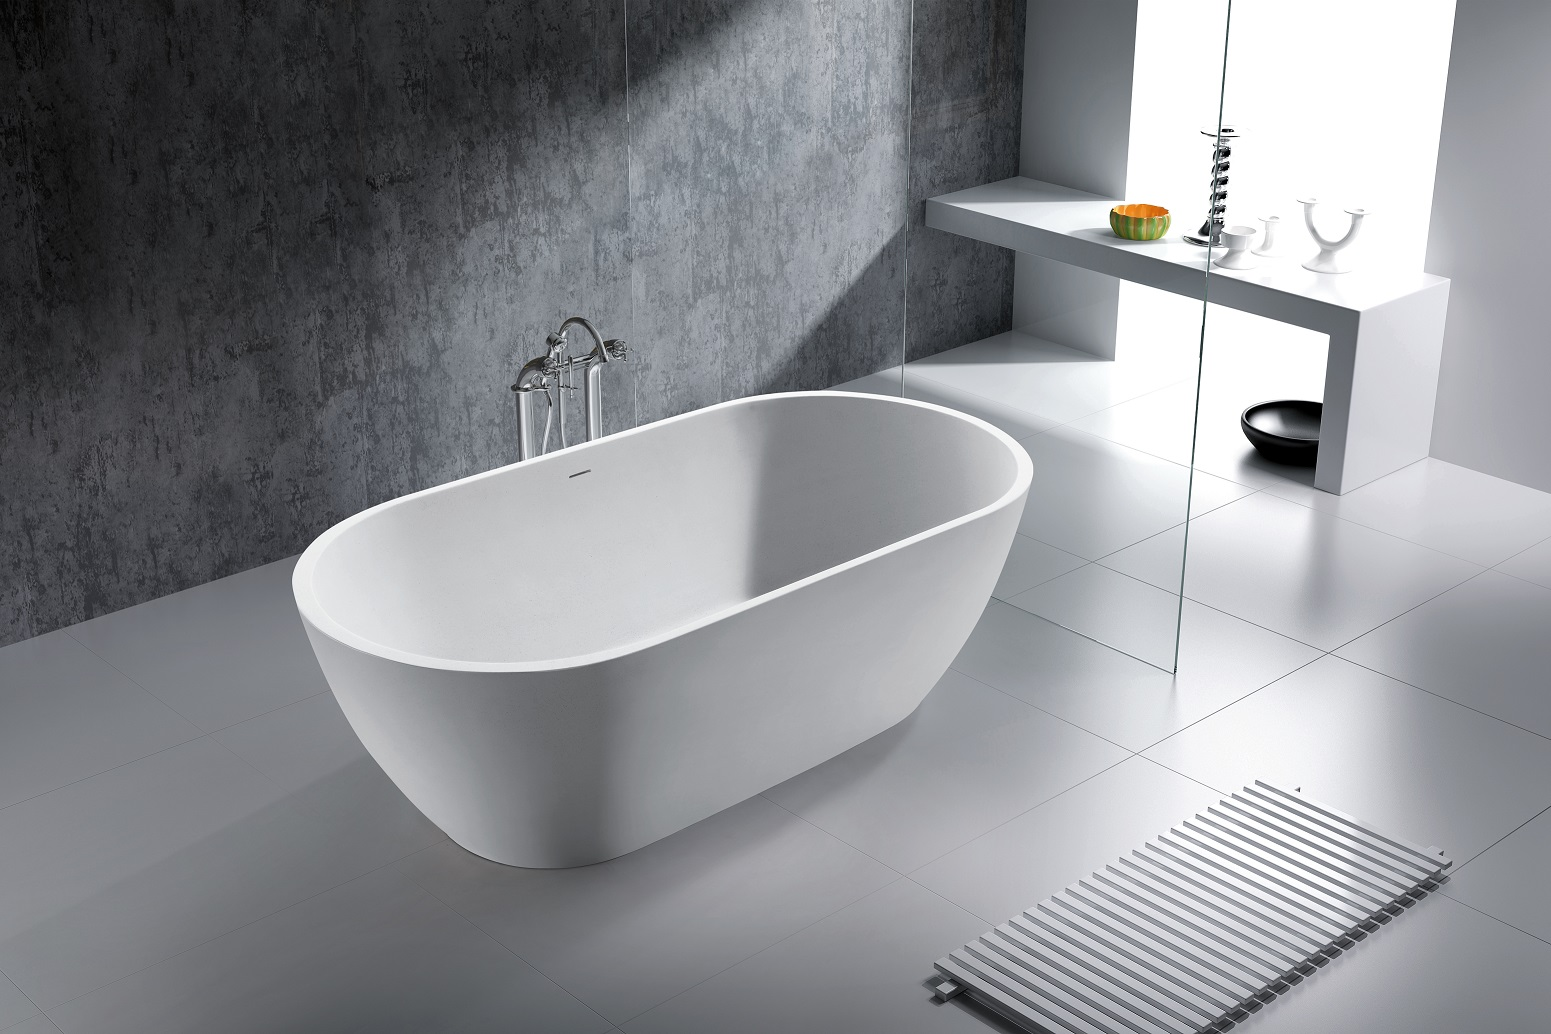 "Accio Luxury Modern Bathtub 709"". Room Decorating Ideas. Peerless Faucets. Wood Writing Desk. Liquor Cabinet With Lock. Modern Valances. Round Counter Height Dining Table. Bathroom Plans. Industrial Tv Stand"